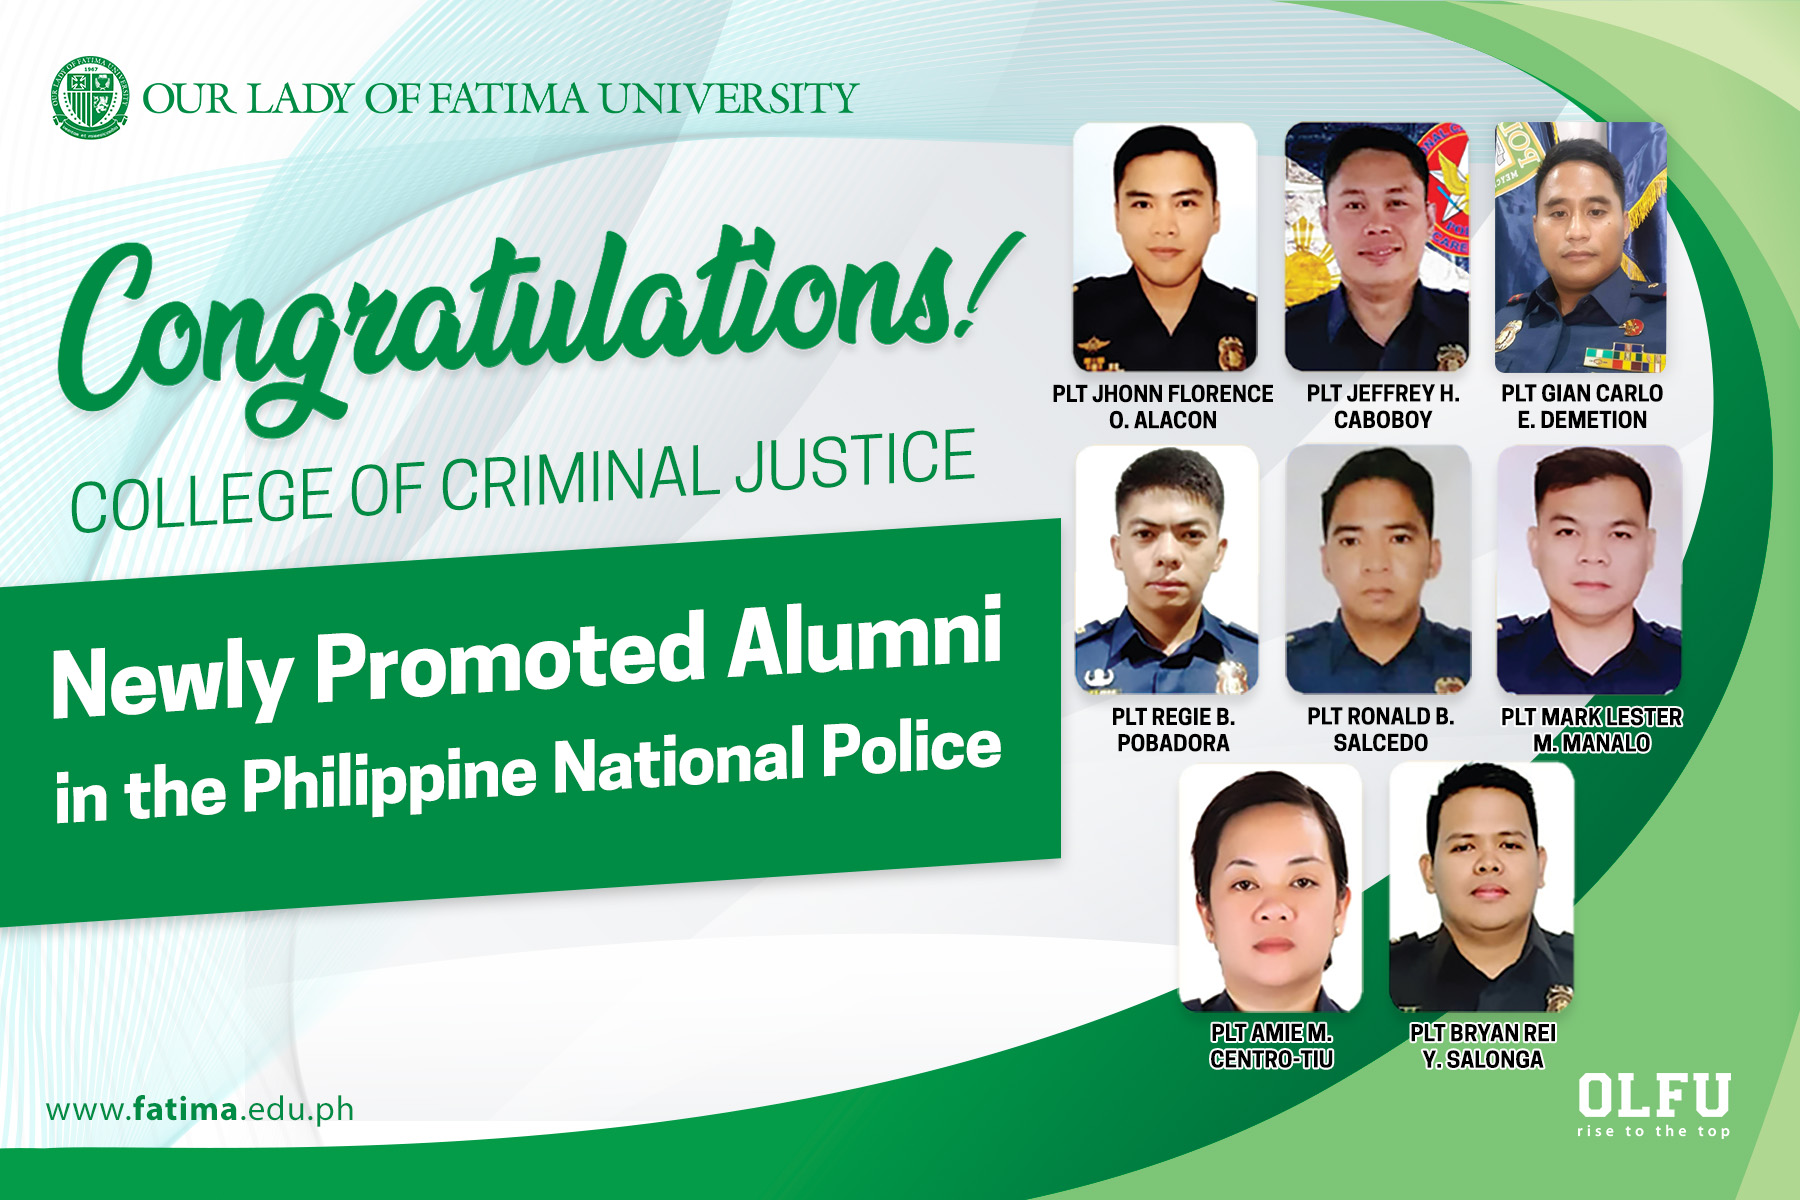 Criminal Justice Alumni rise in PNP ranks; Eight promoted to Police Lieutenant